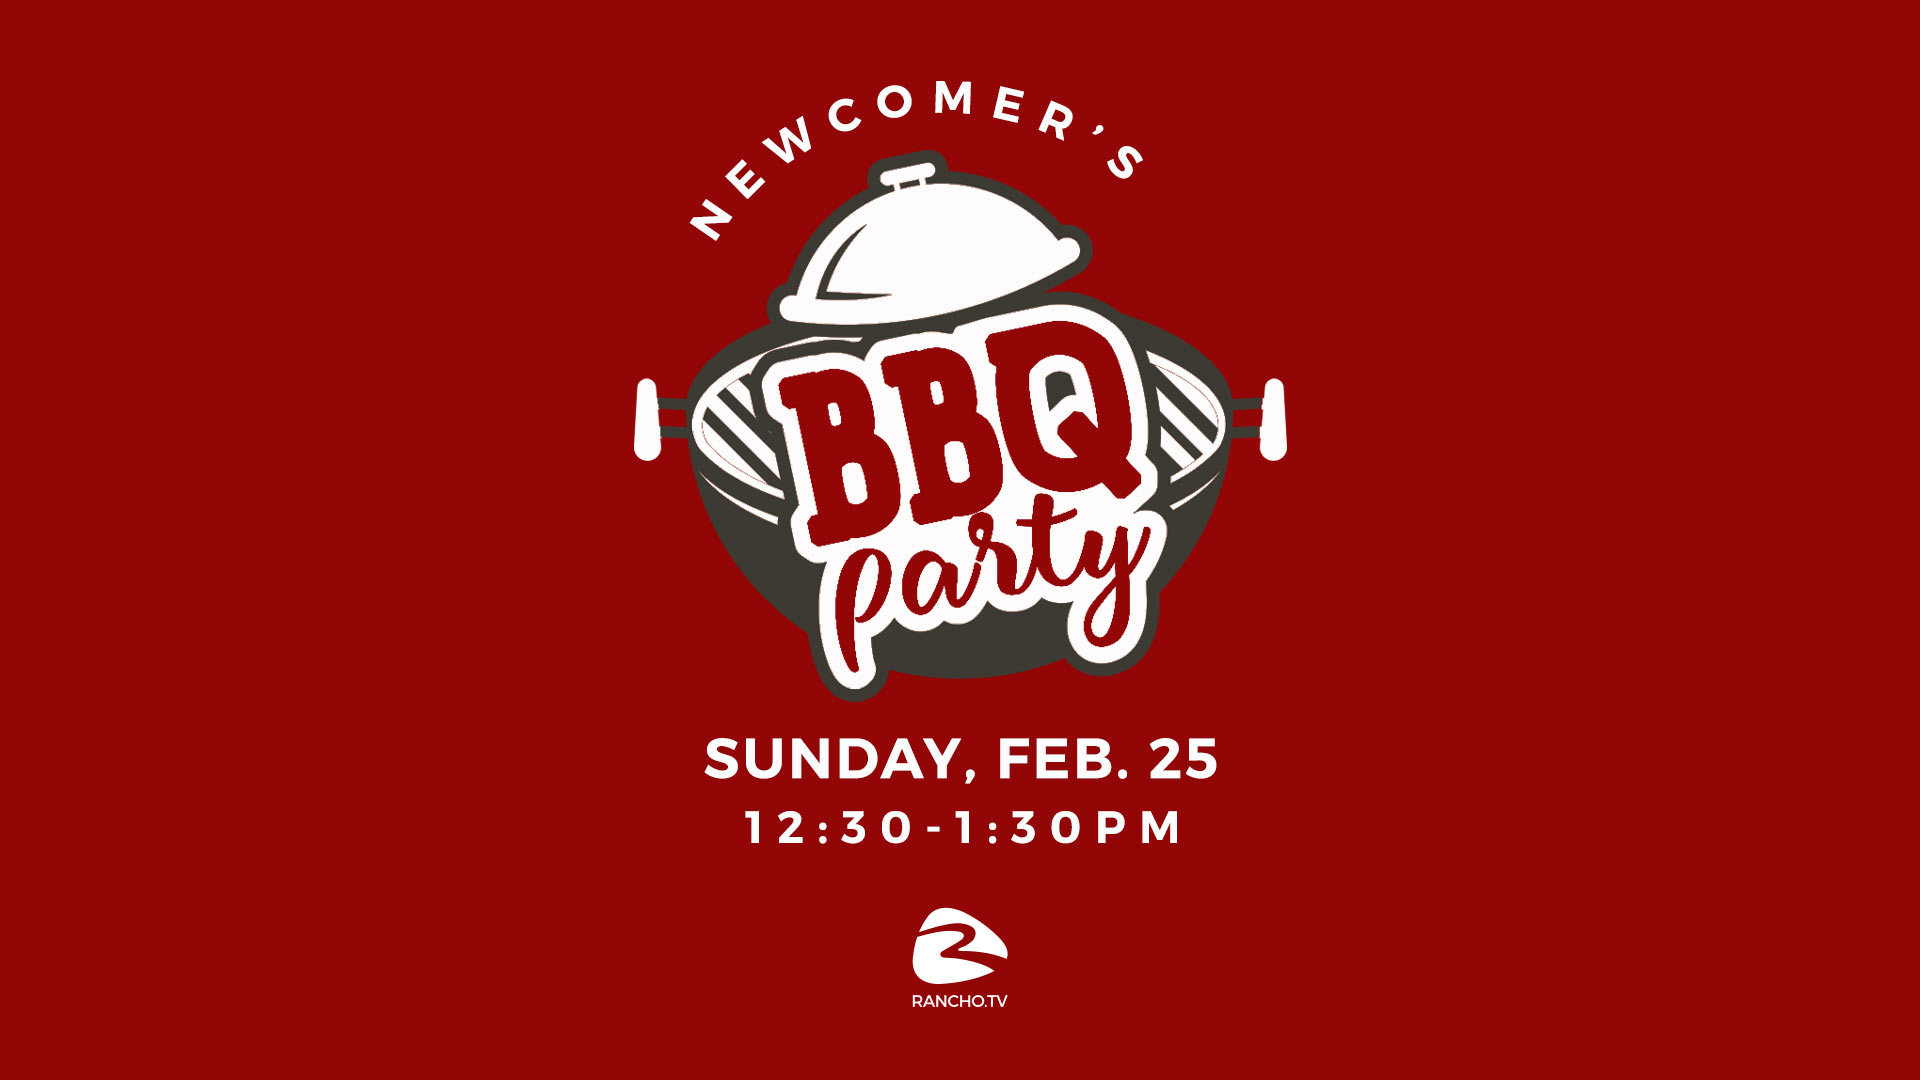 Newcomers bbq